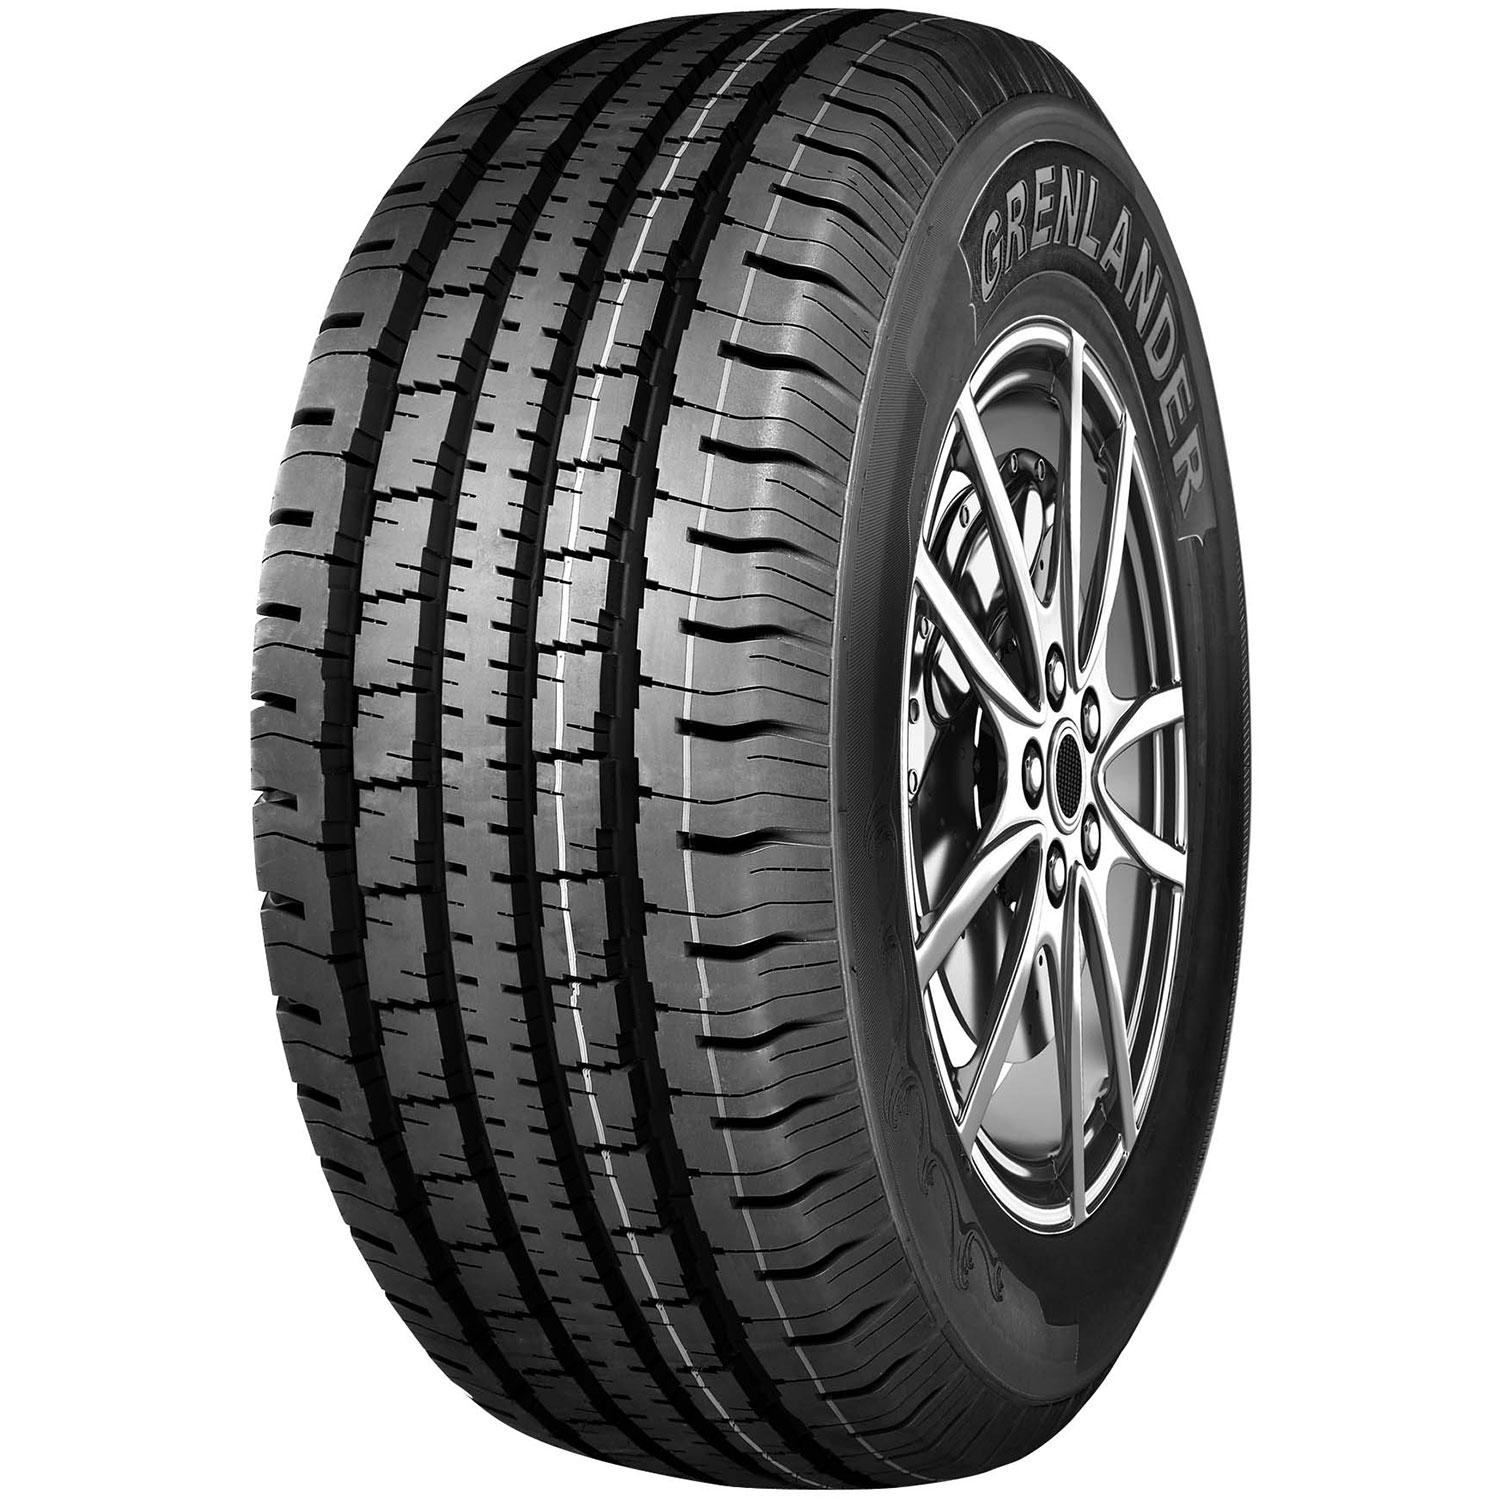 Grenlander Tires L-finder 78 Passenger All Season Tire